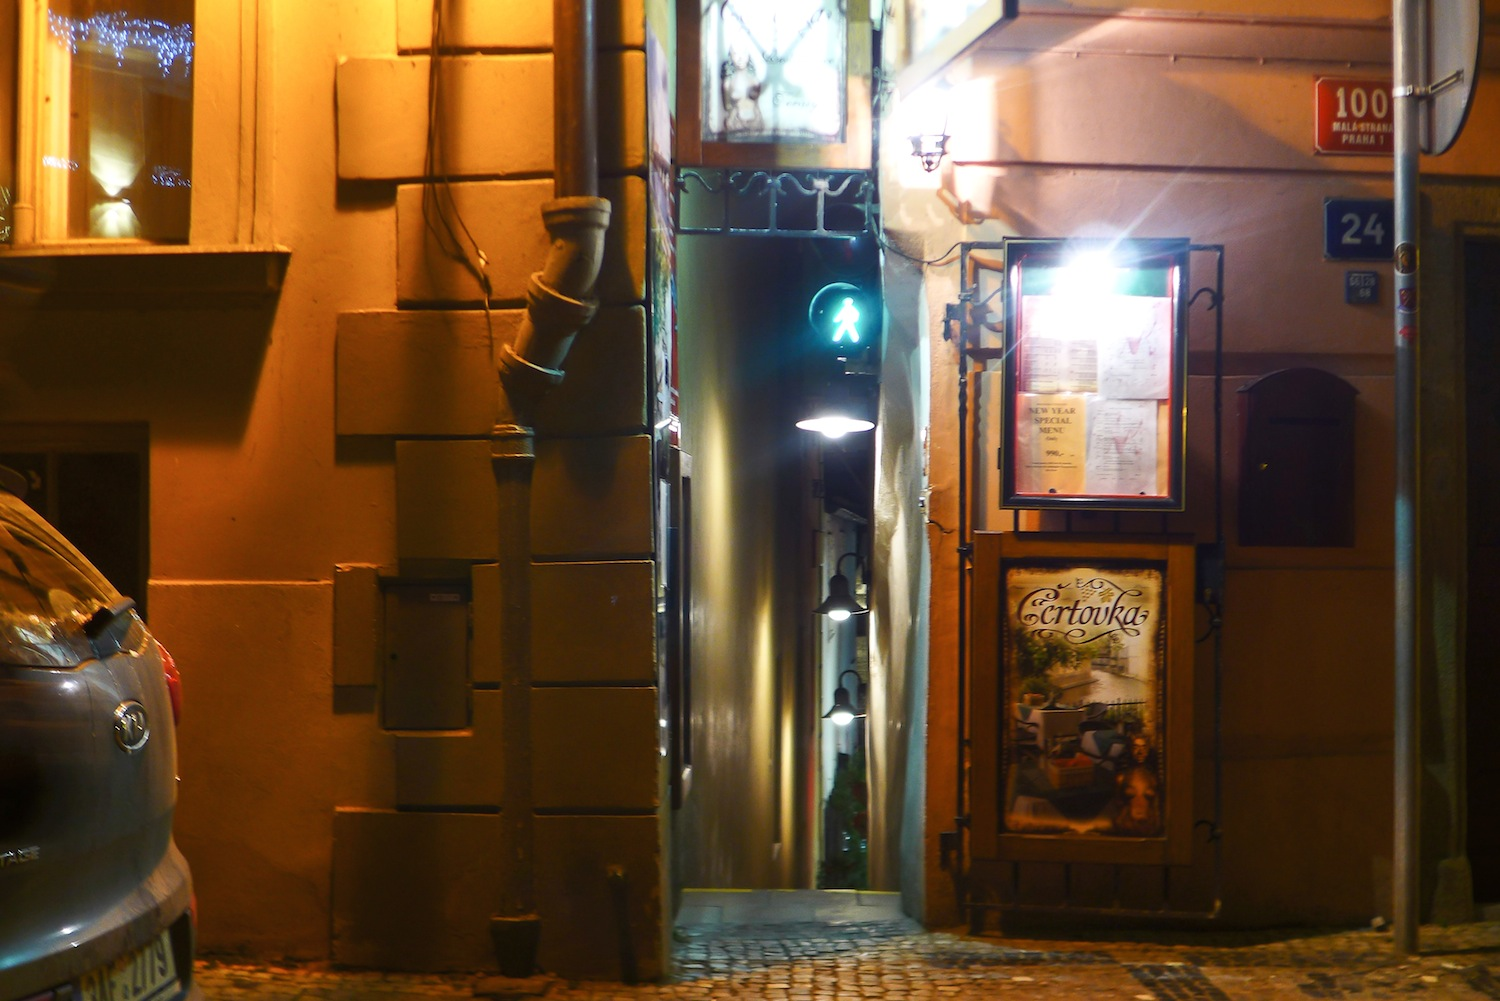 This stoplight along the narrowest alley in Prague is a must-see and must-try!